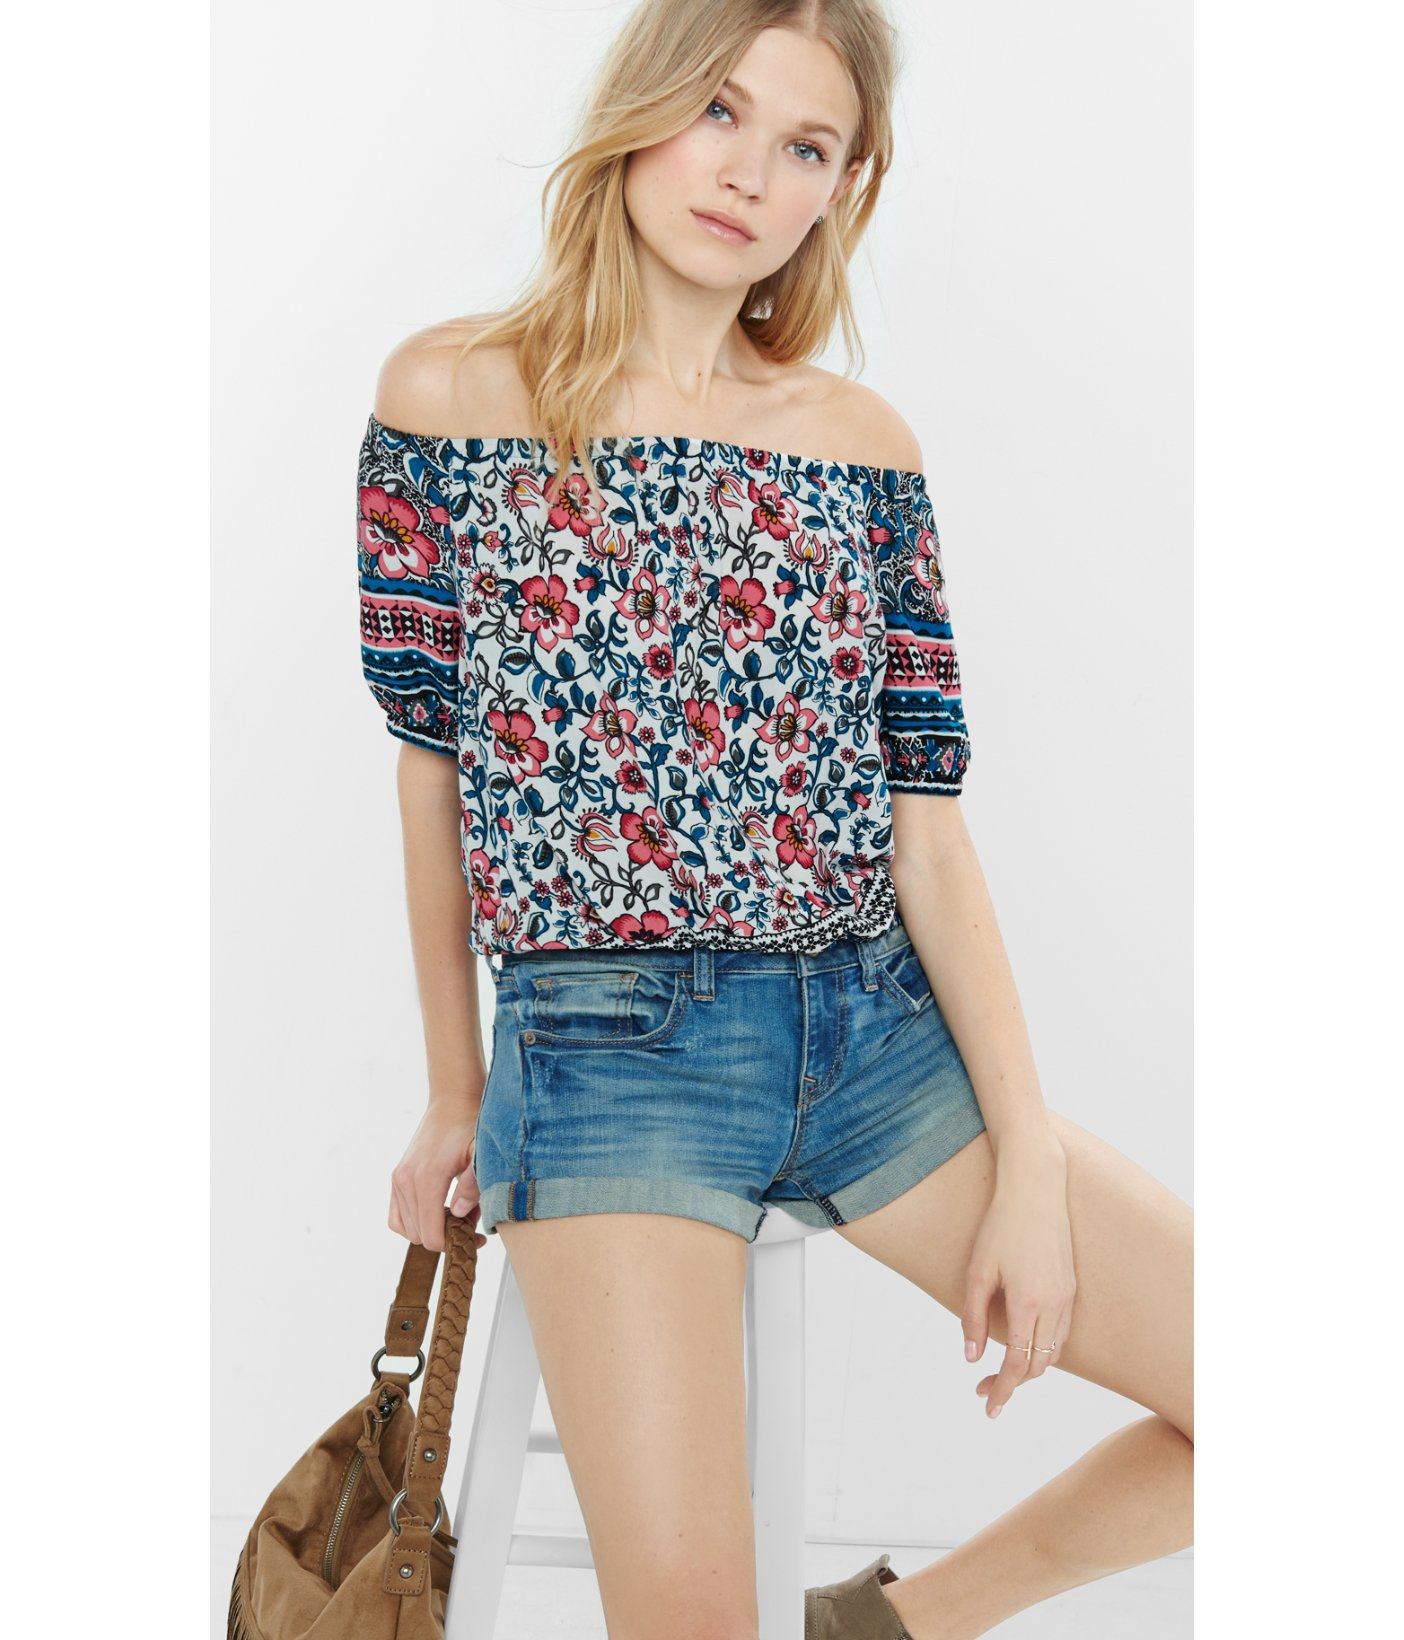 b3ca6d81e37ae Lyst - Express Mixed Floral Print Off The Shoulder Blouse in Brown